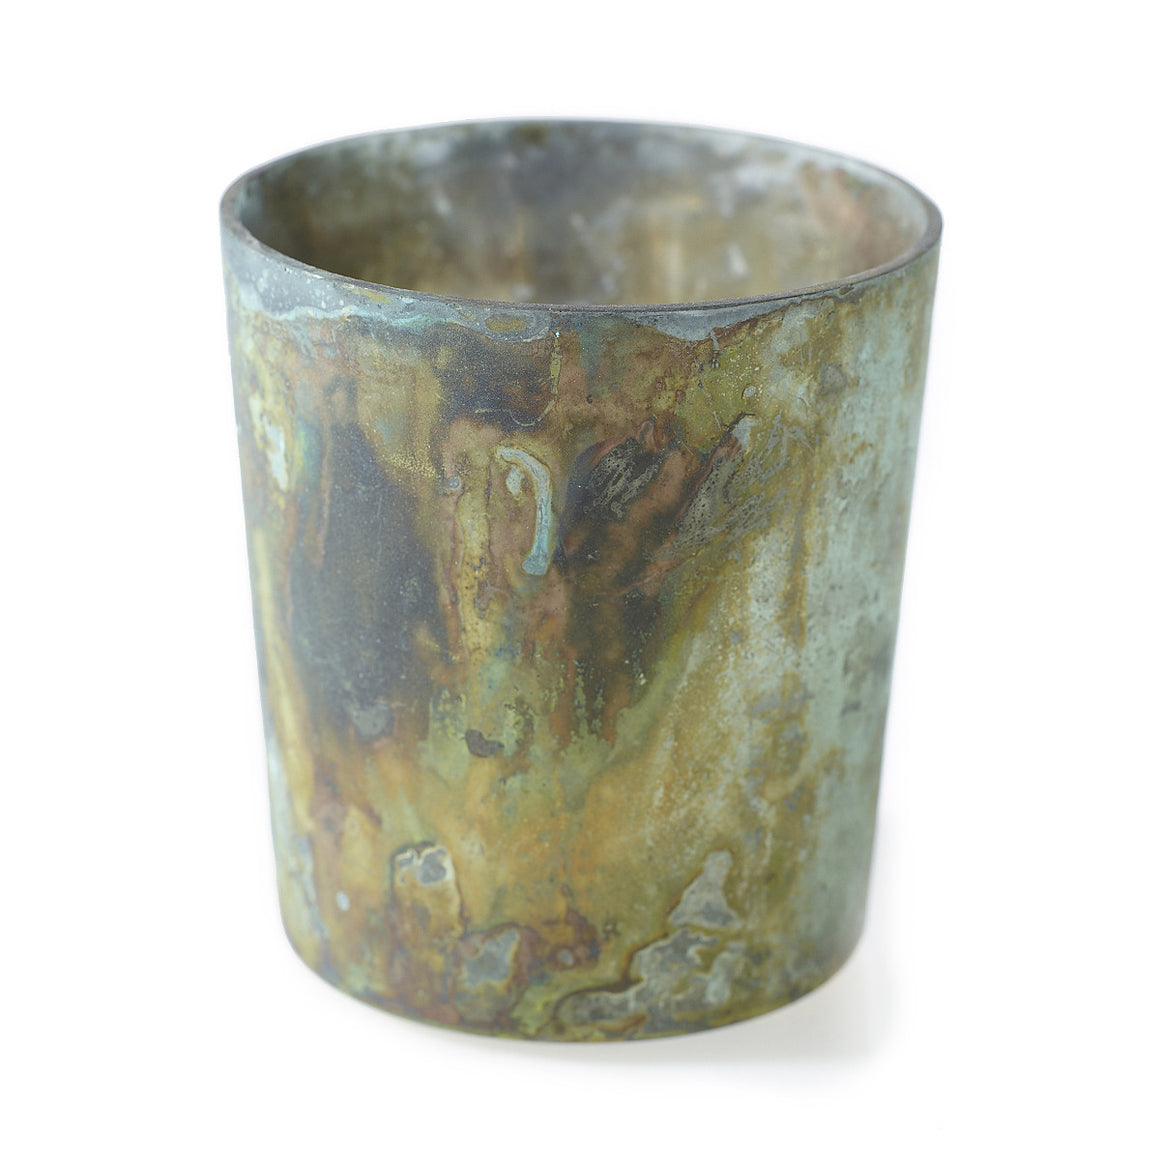 2.5 x 2.75 inches,Patina Celadon Green